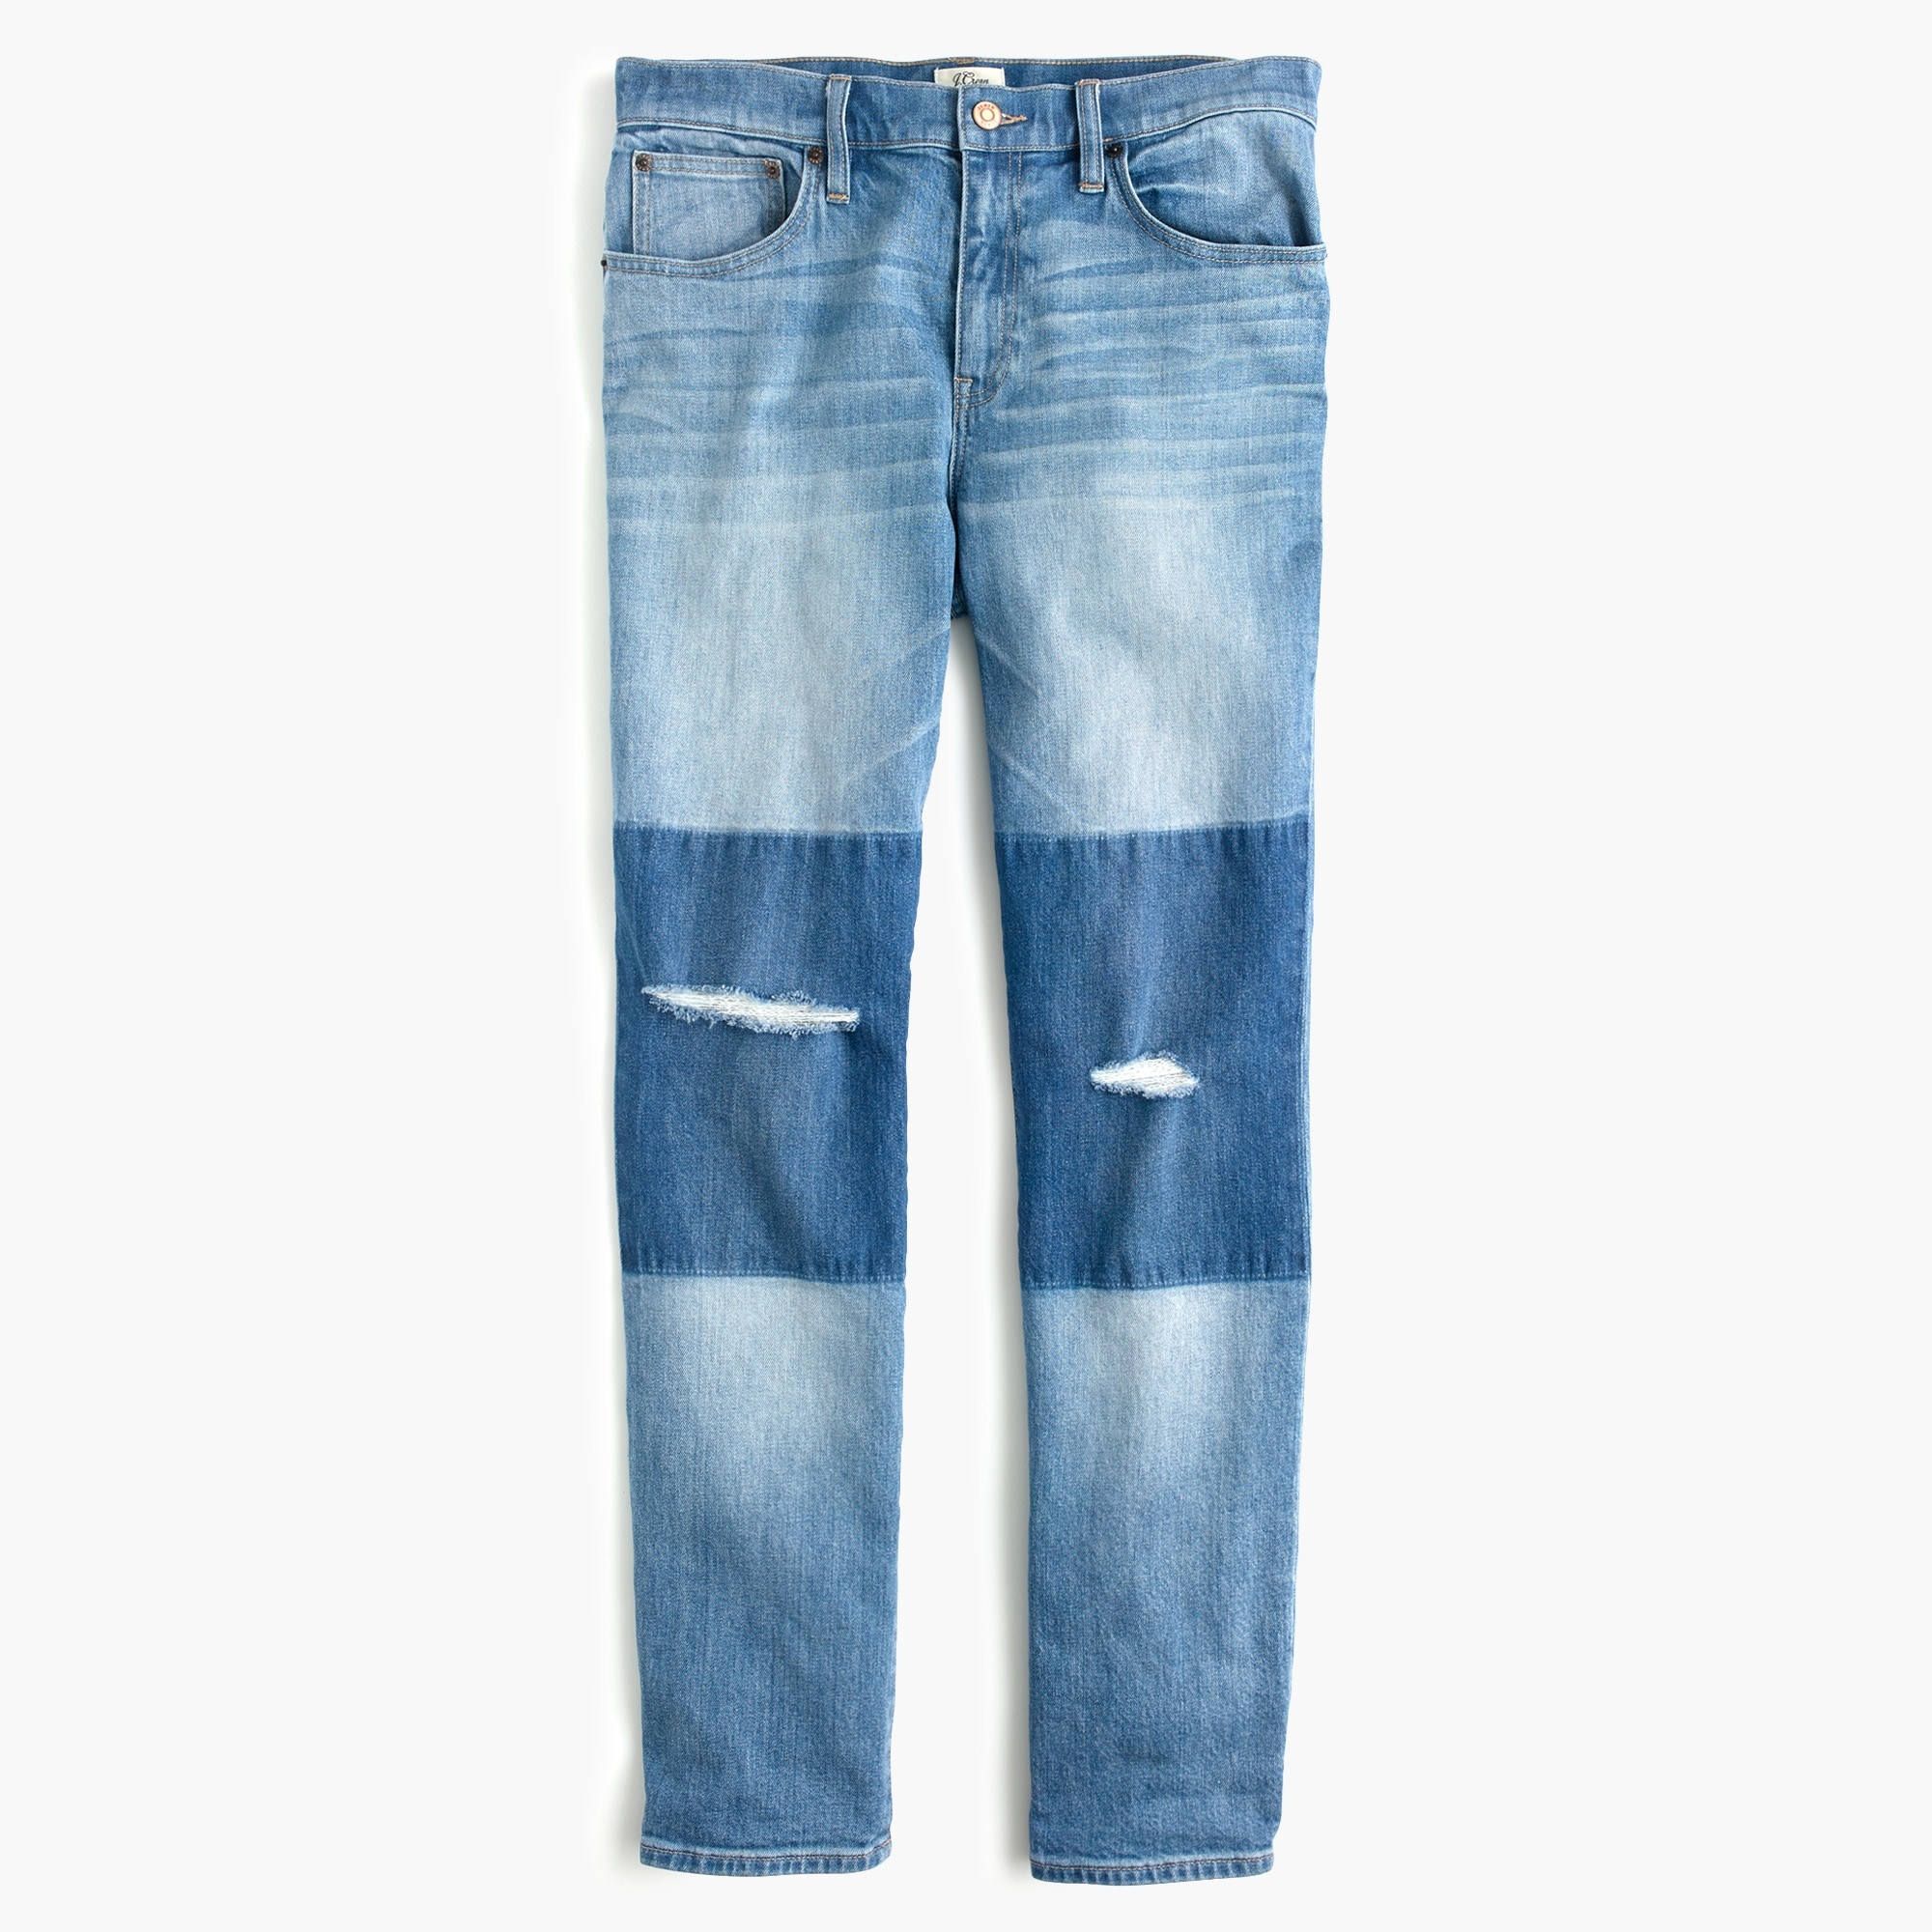 Image 6 for Tall Slim boyfriend jean with shadow patches